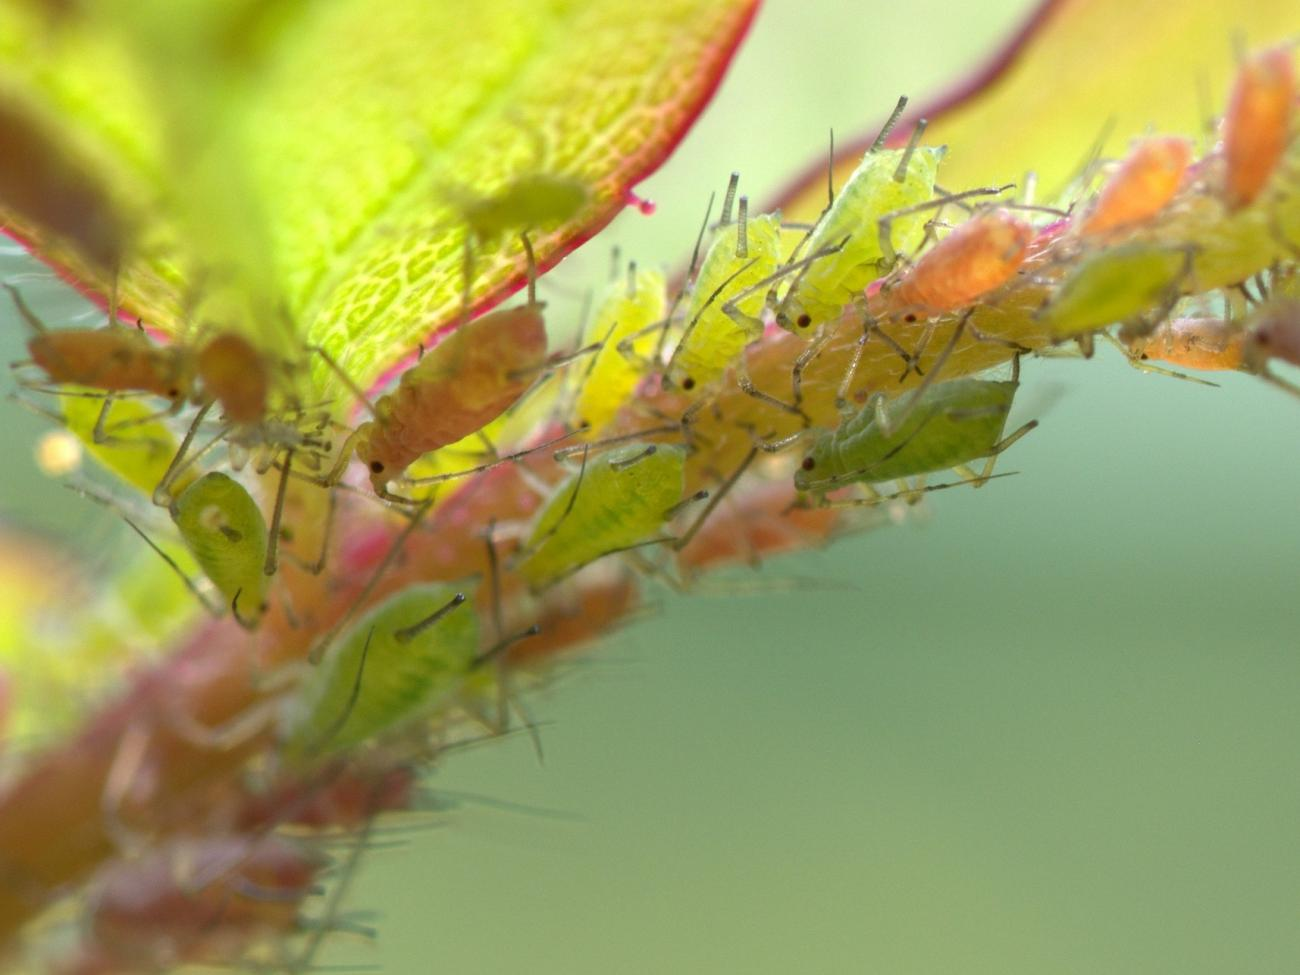 Aphid Control How To Identify And Get Rid Of Aphids The Old